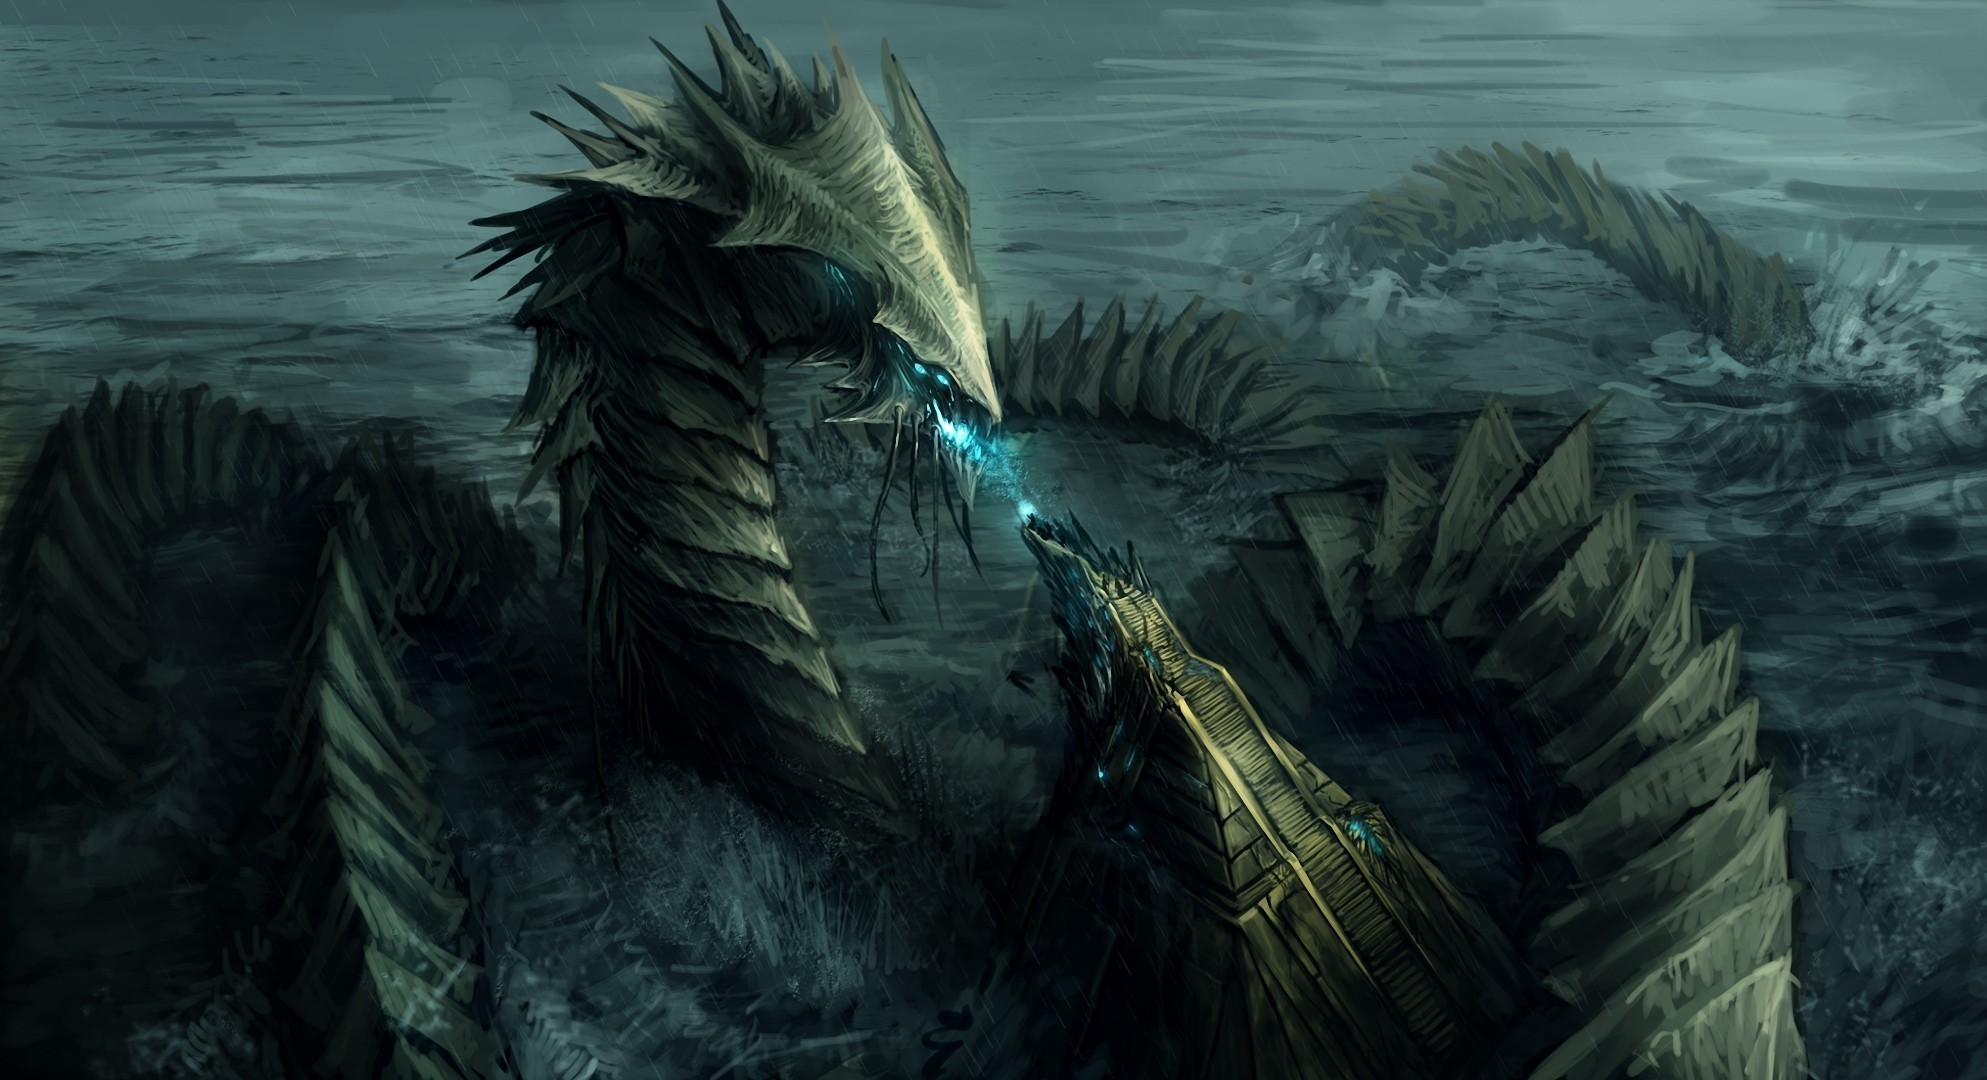 Mythical Creature Wallpaper Beautiful Mythical Creatures